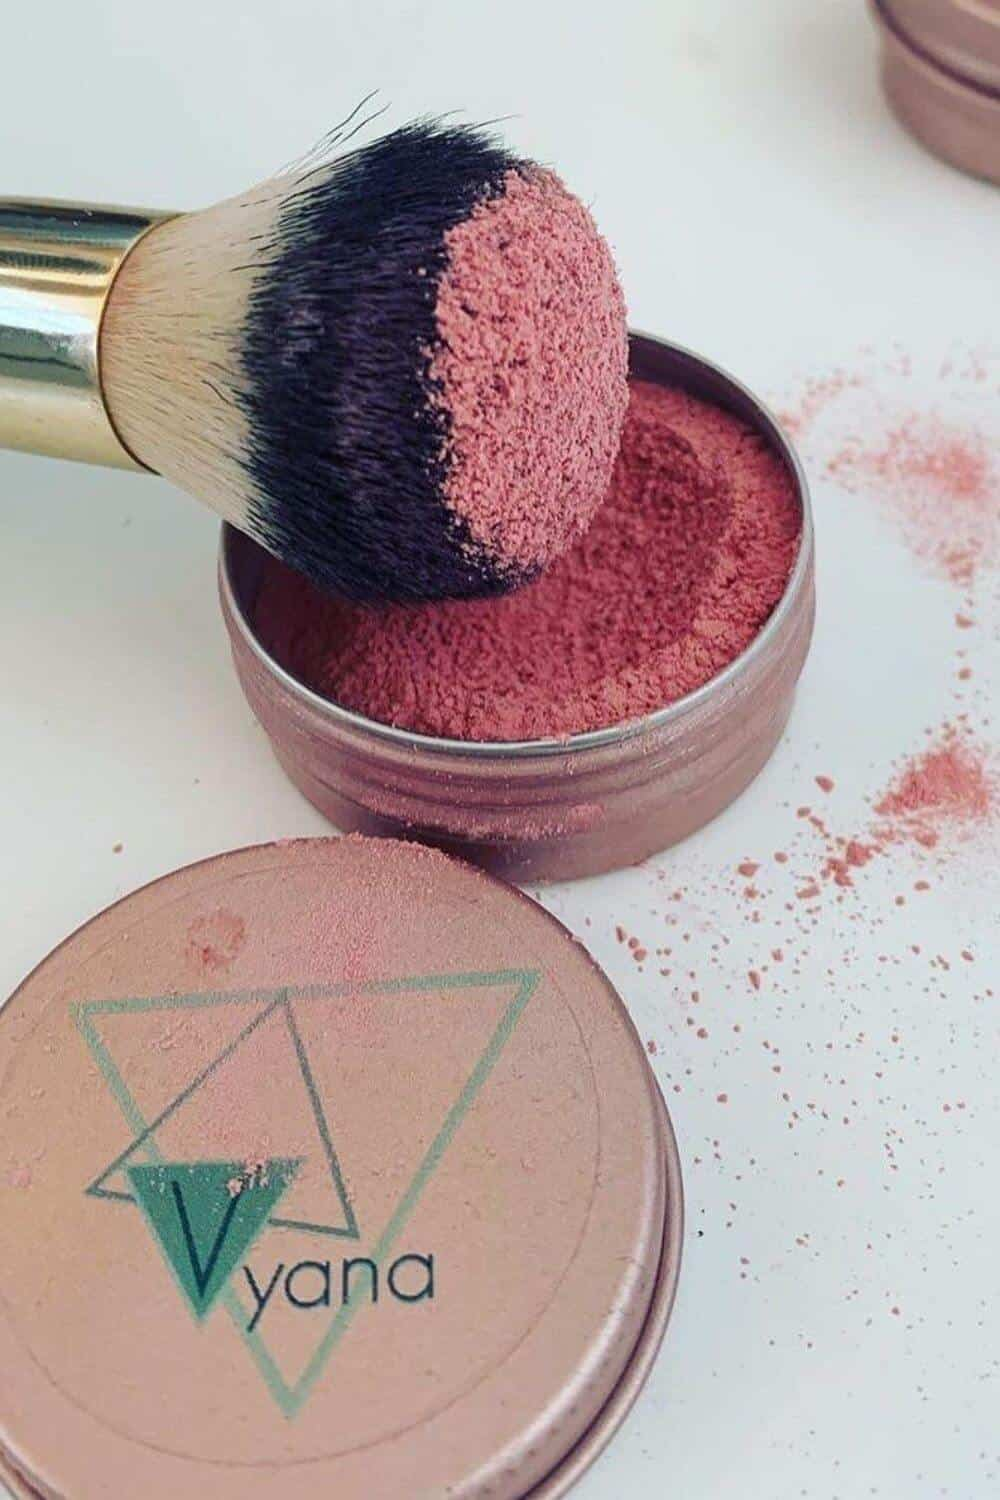 Finding zero waste makeup alternatives is no easy feat, because traditional containers are difficult (at best) to recycle, being often comprised of composite materials and components Image by Vyana Plant Beauty #zerowastemakeup